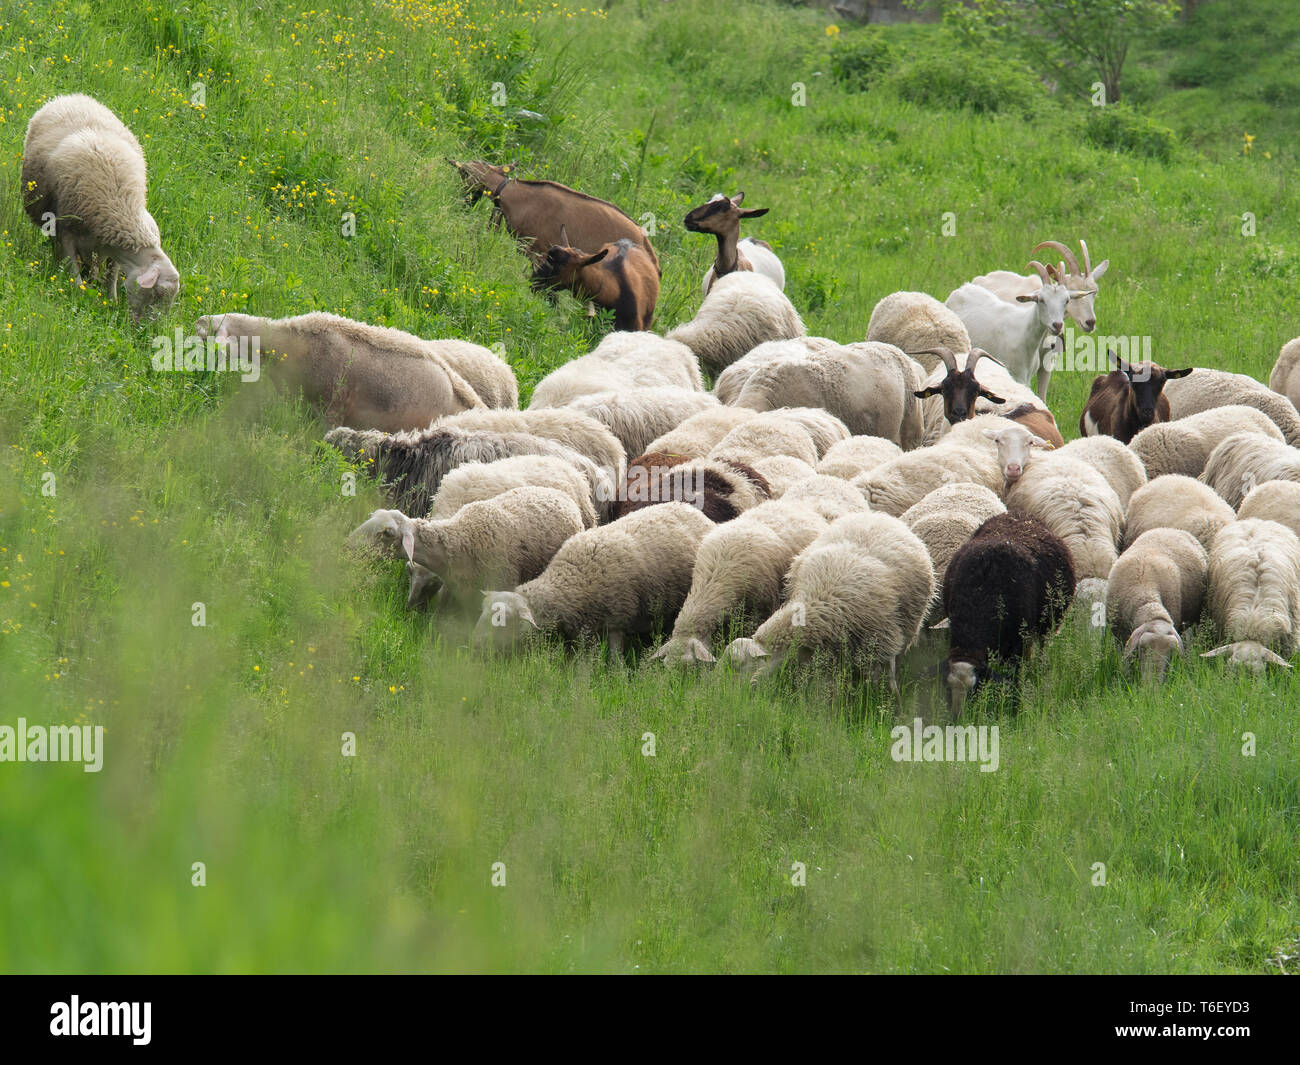 flock of sheep and goats grazing lush spring grass and flowers, in a sunny day - Stock Image